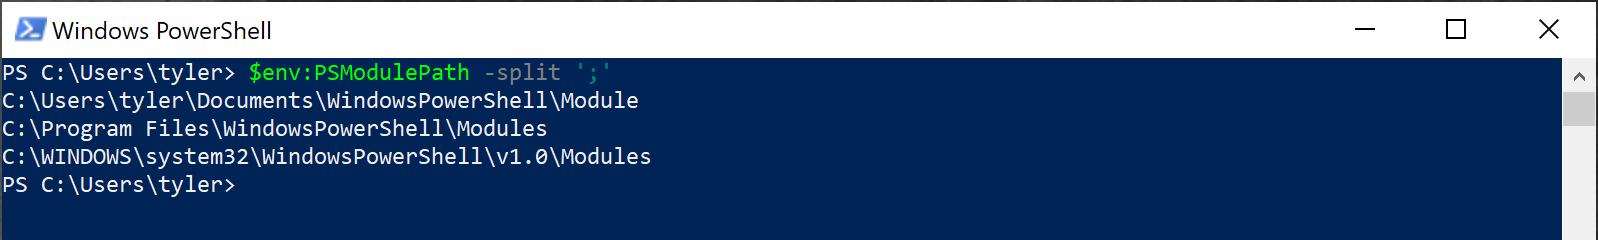 Viewing module paths with $env:PSModulePath